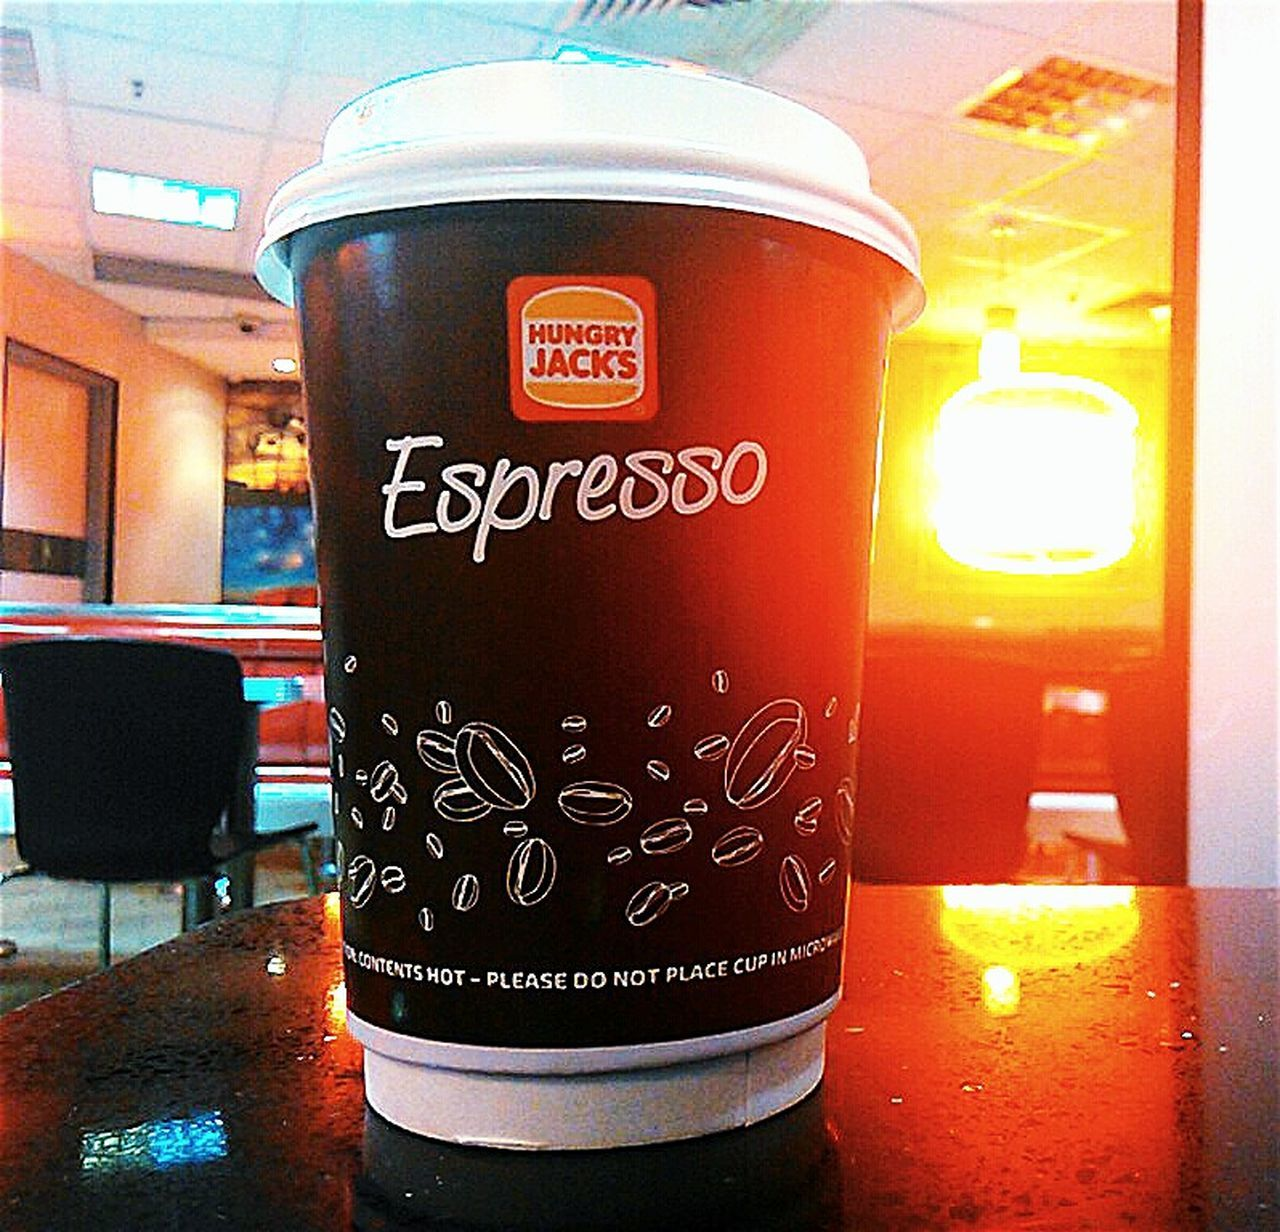 Espresso Breakfast Burger King Hungry Jack's Coffee Coffee Time Coffee Cup Coffee ☕ Coffee Break Espresso❤ Espresso Cup Caffeine Koffee Coffeetime Coffeebreak Caffeine Boost... Disposable Cup Drink Cups Drinkcups Drink Cup Drinkcup Drink Coffee Espresso Coffee Espressocoffee Disposable Coffee Cup